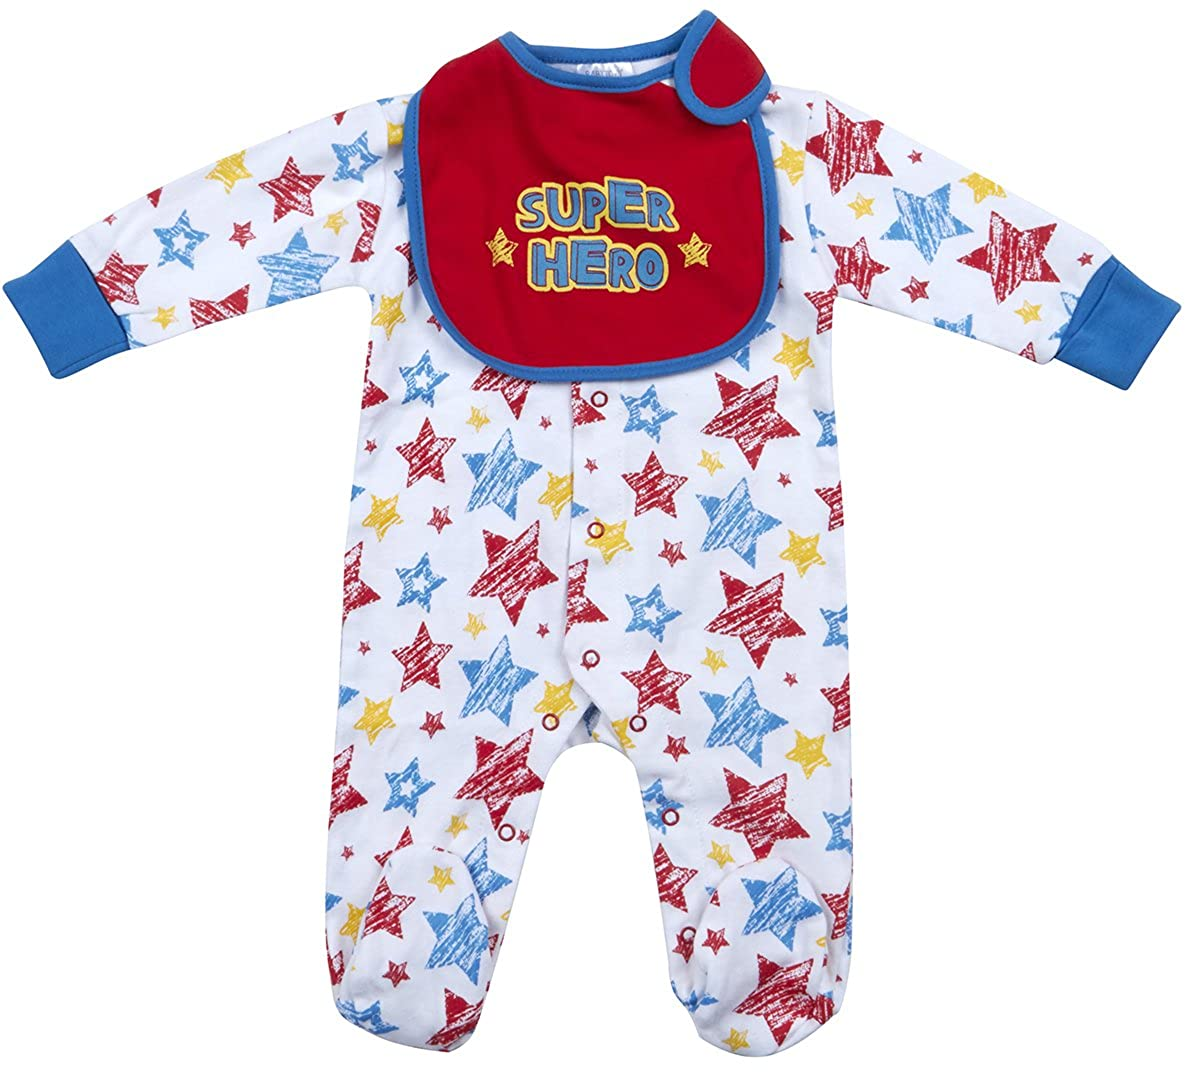 BABYTOWN Baby Boys Sleepsuit All Over Star Print Superhero Cape Bib